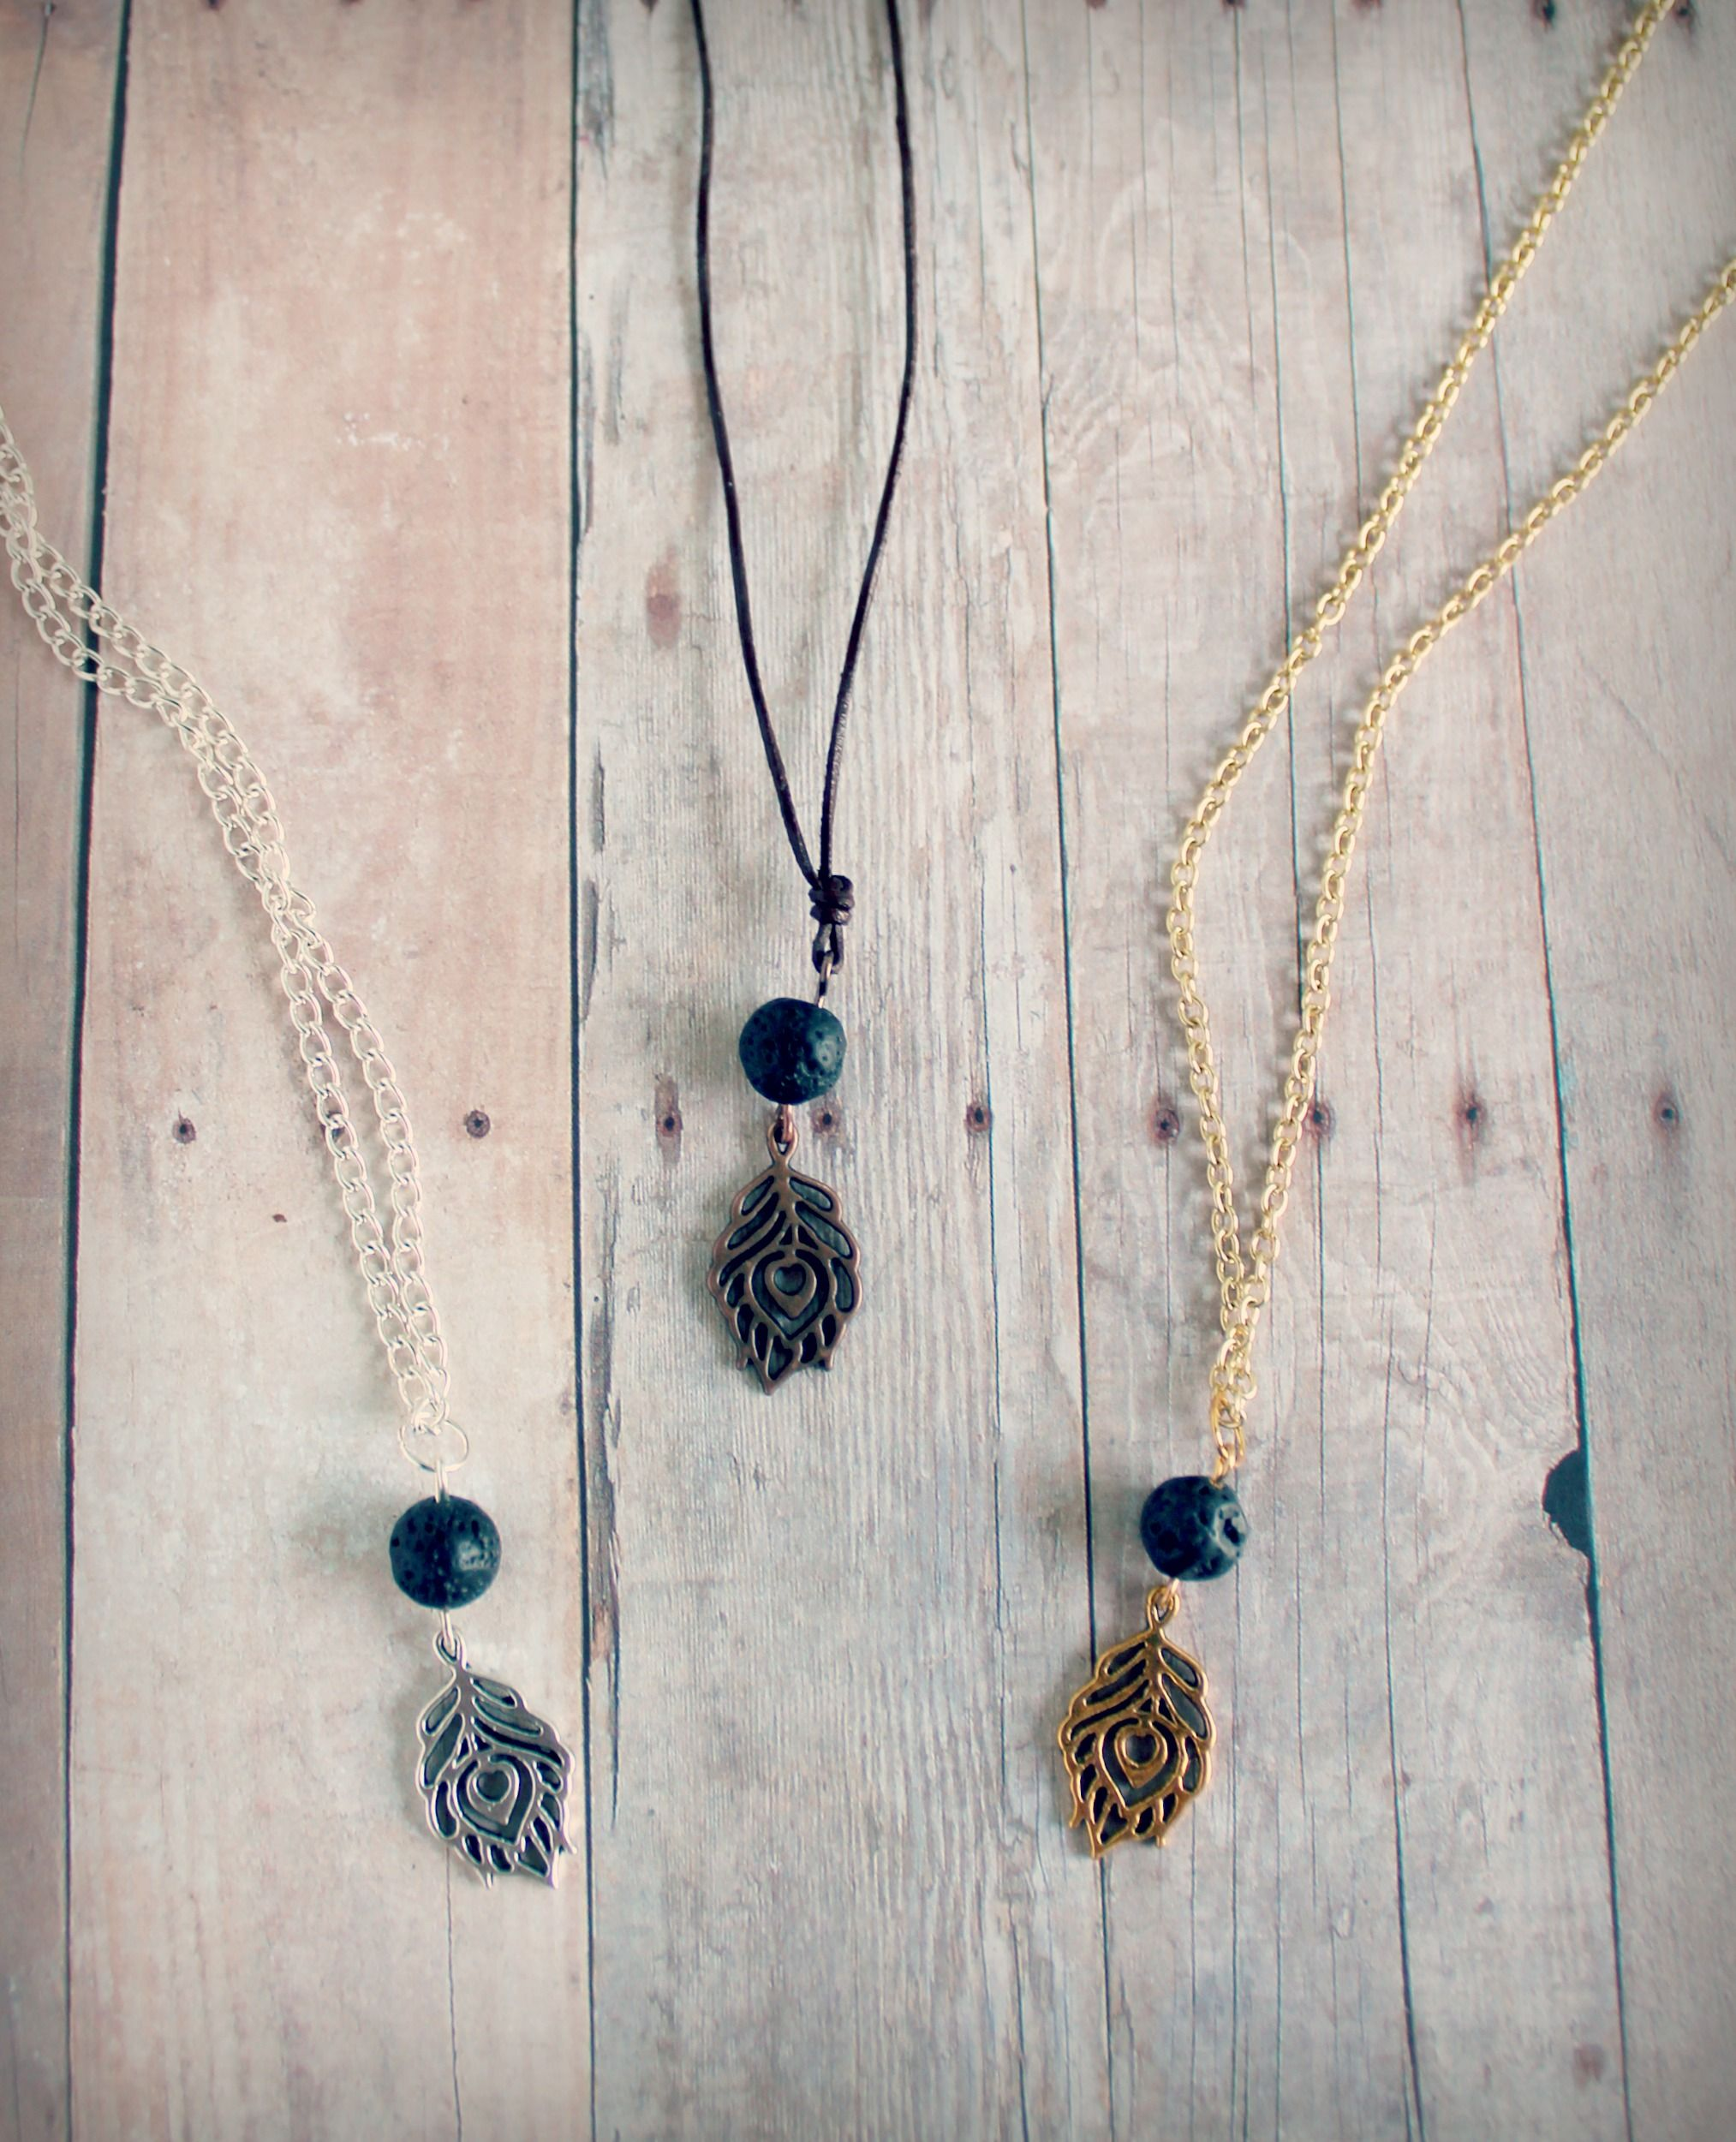 Sufferers wear copper jewelry in the hopes of easing symptoms - Diffuser Necklace With Natural Lava Stone And Peacock Charm In Silver Gold Or Copper